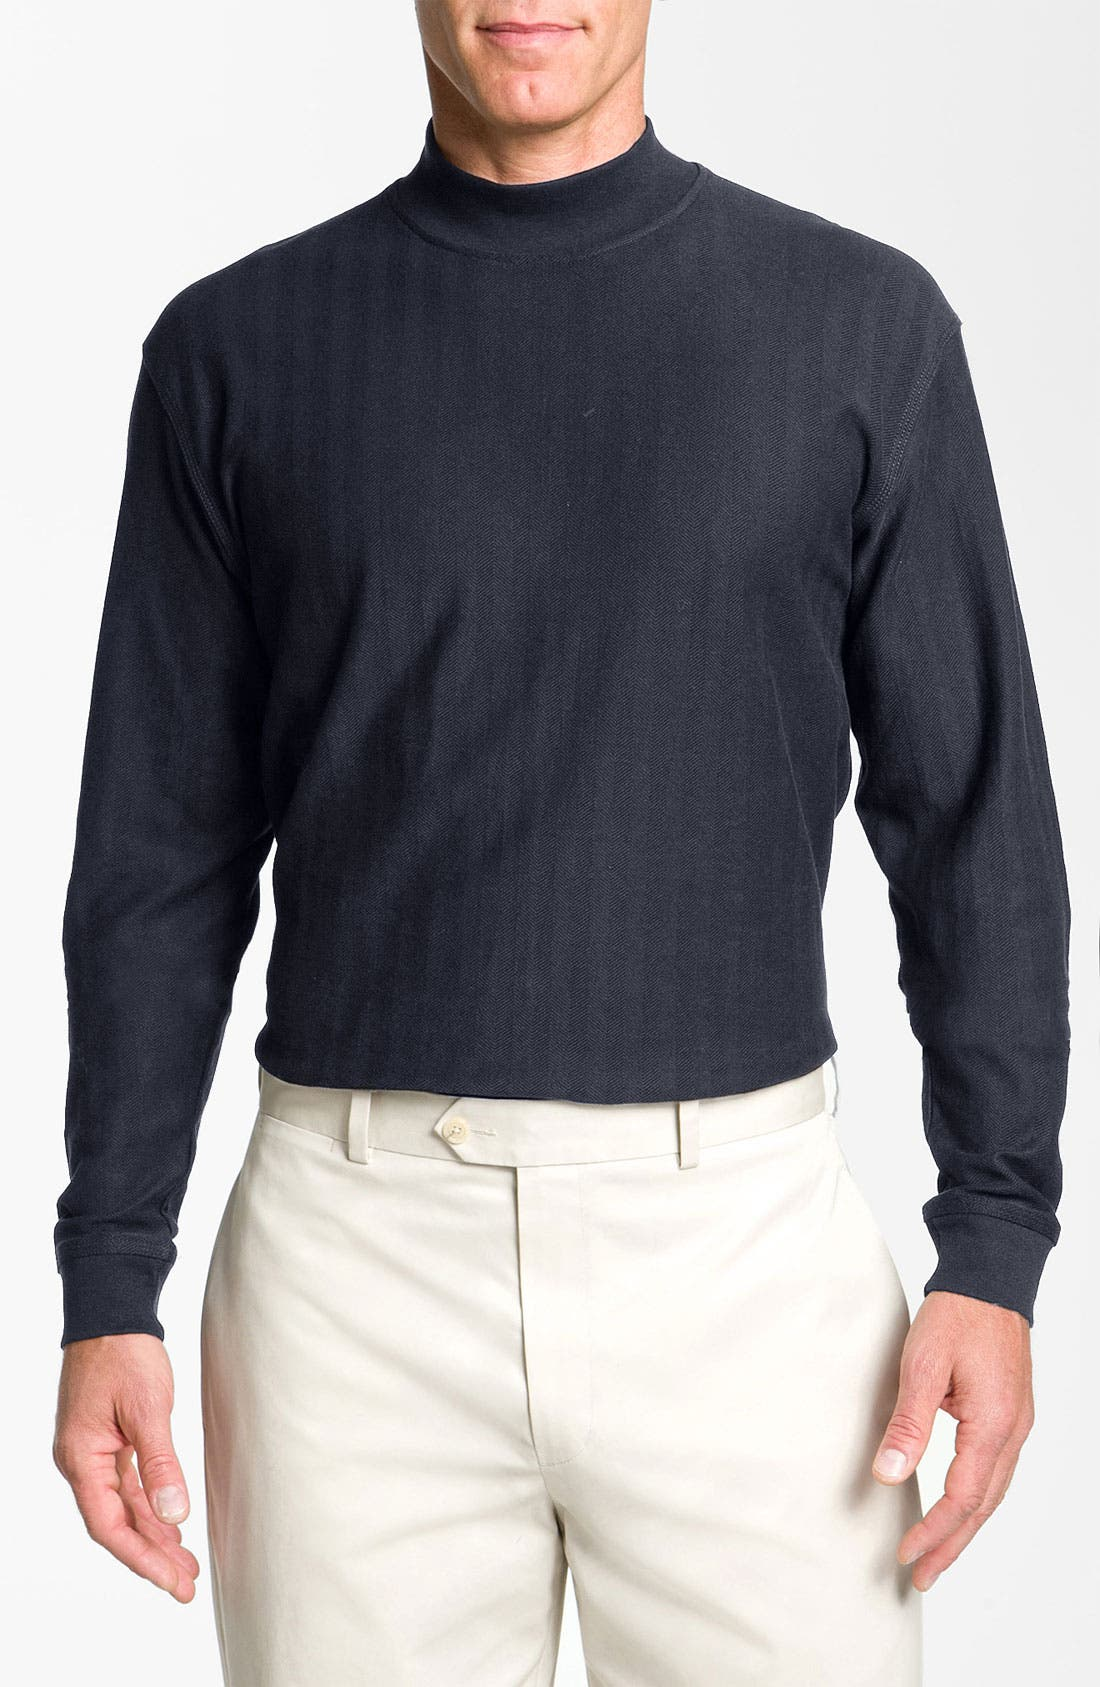 Alternate Image 1 Selected - Cutter & Buck 'Atwell' Mock Neck Sweater (Big & Tall) (Online Exclusive)